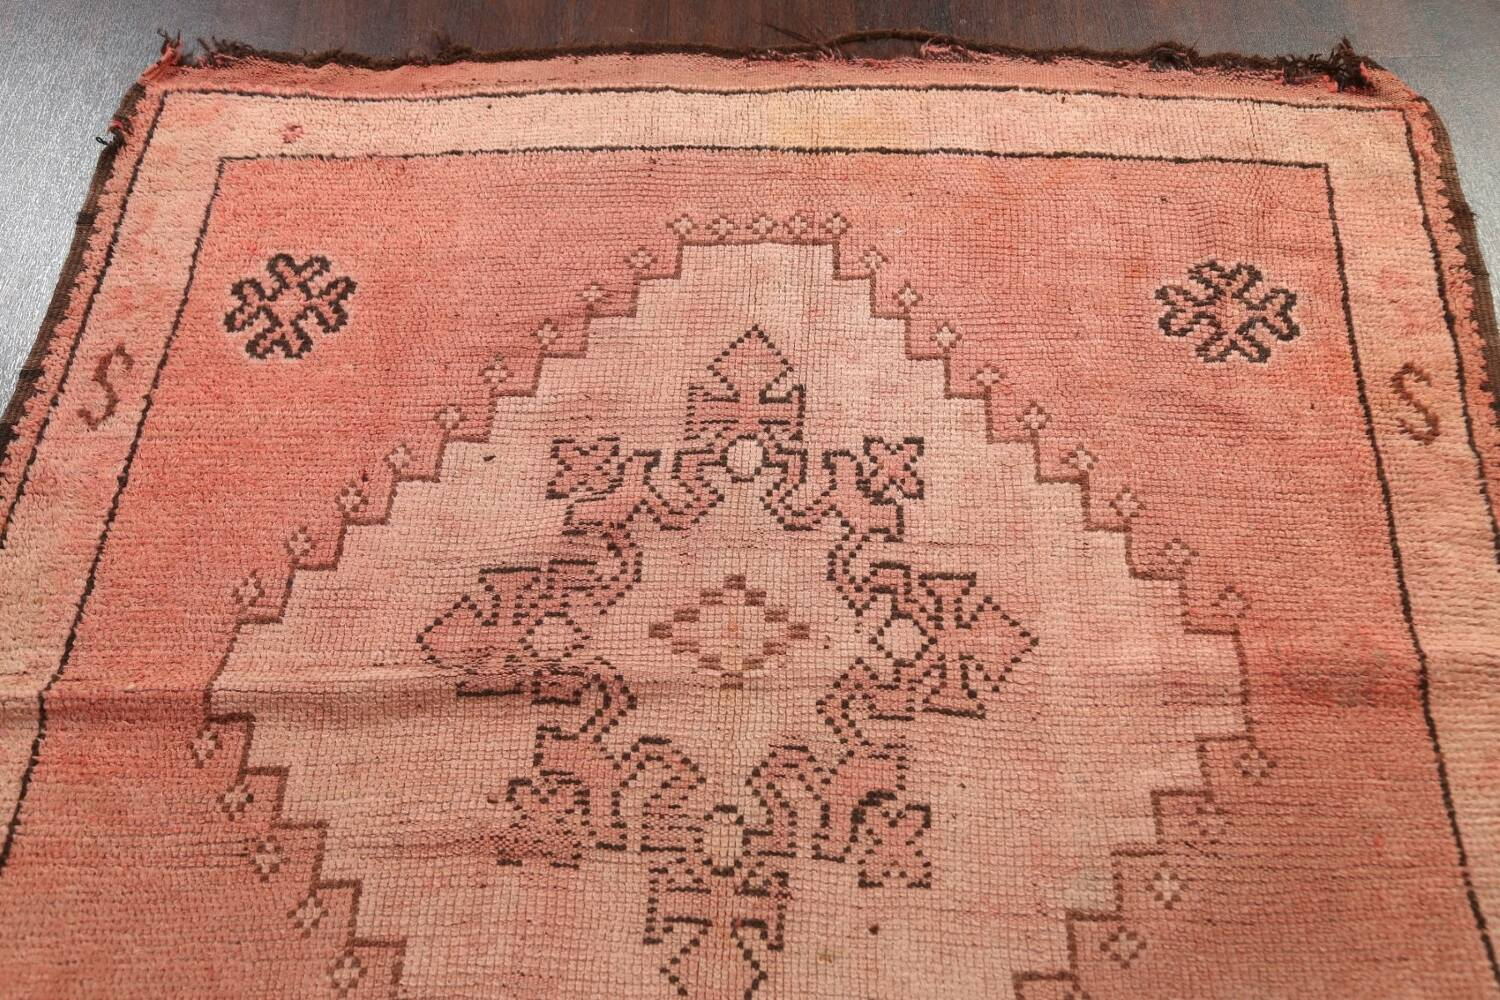 Antique Moroccan Wool Area Rug 5x12 image 9